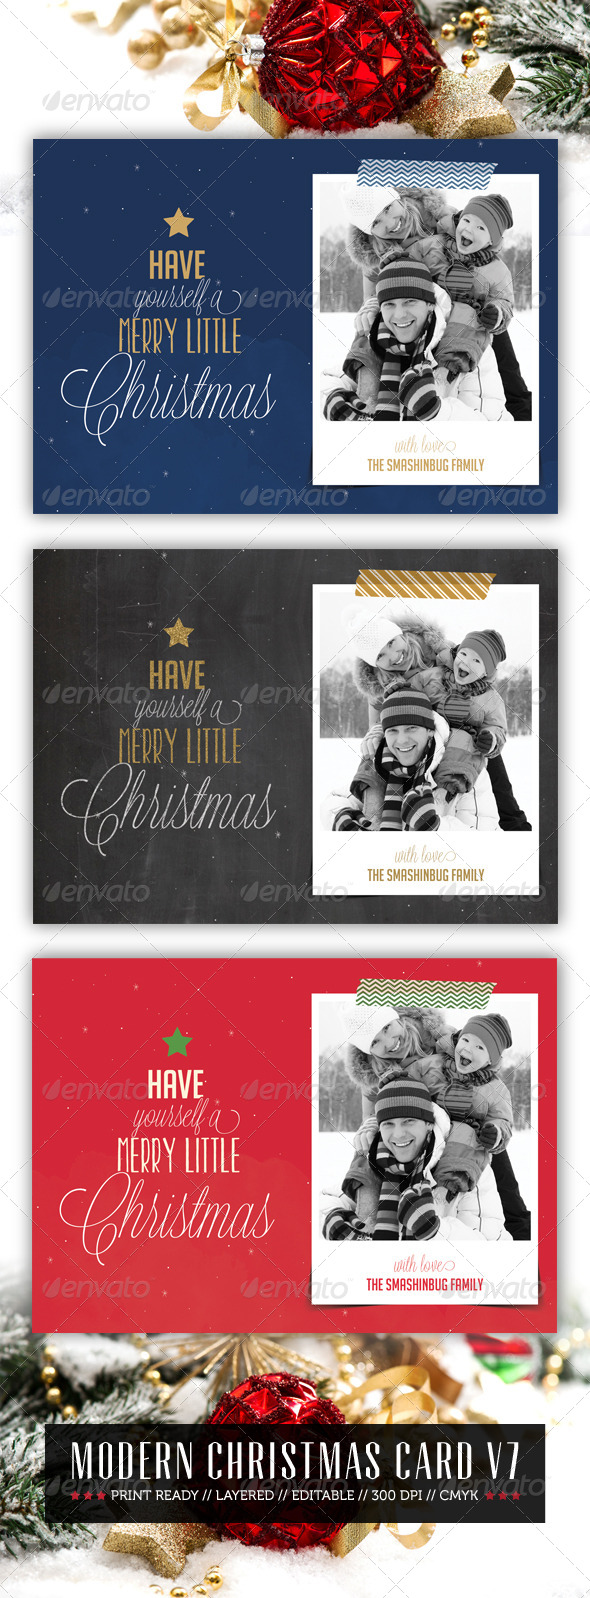 Modern Christmas Card V7  - Holiday Greeting Cards